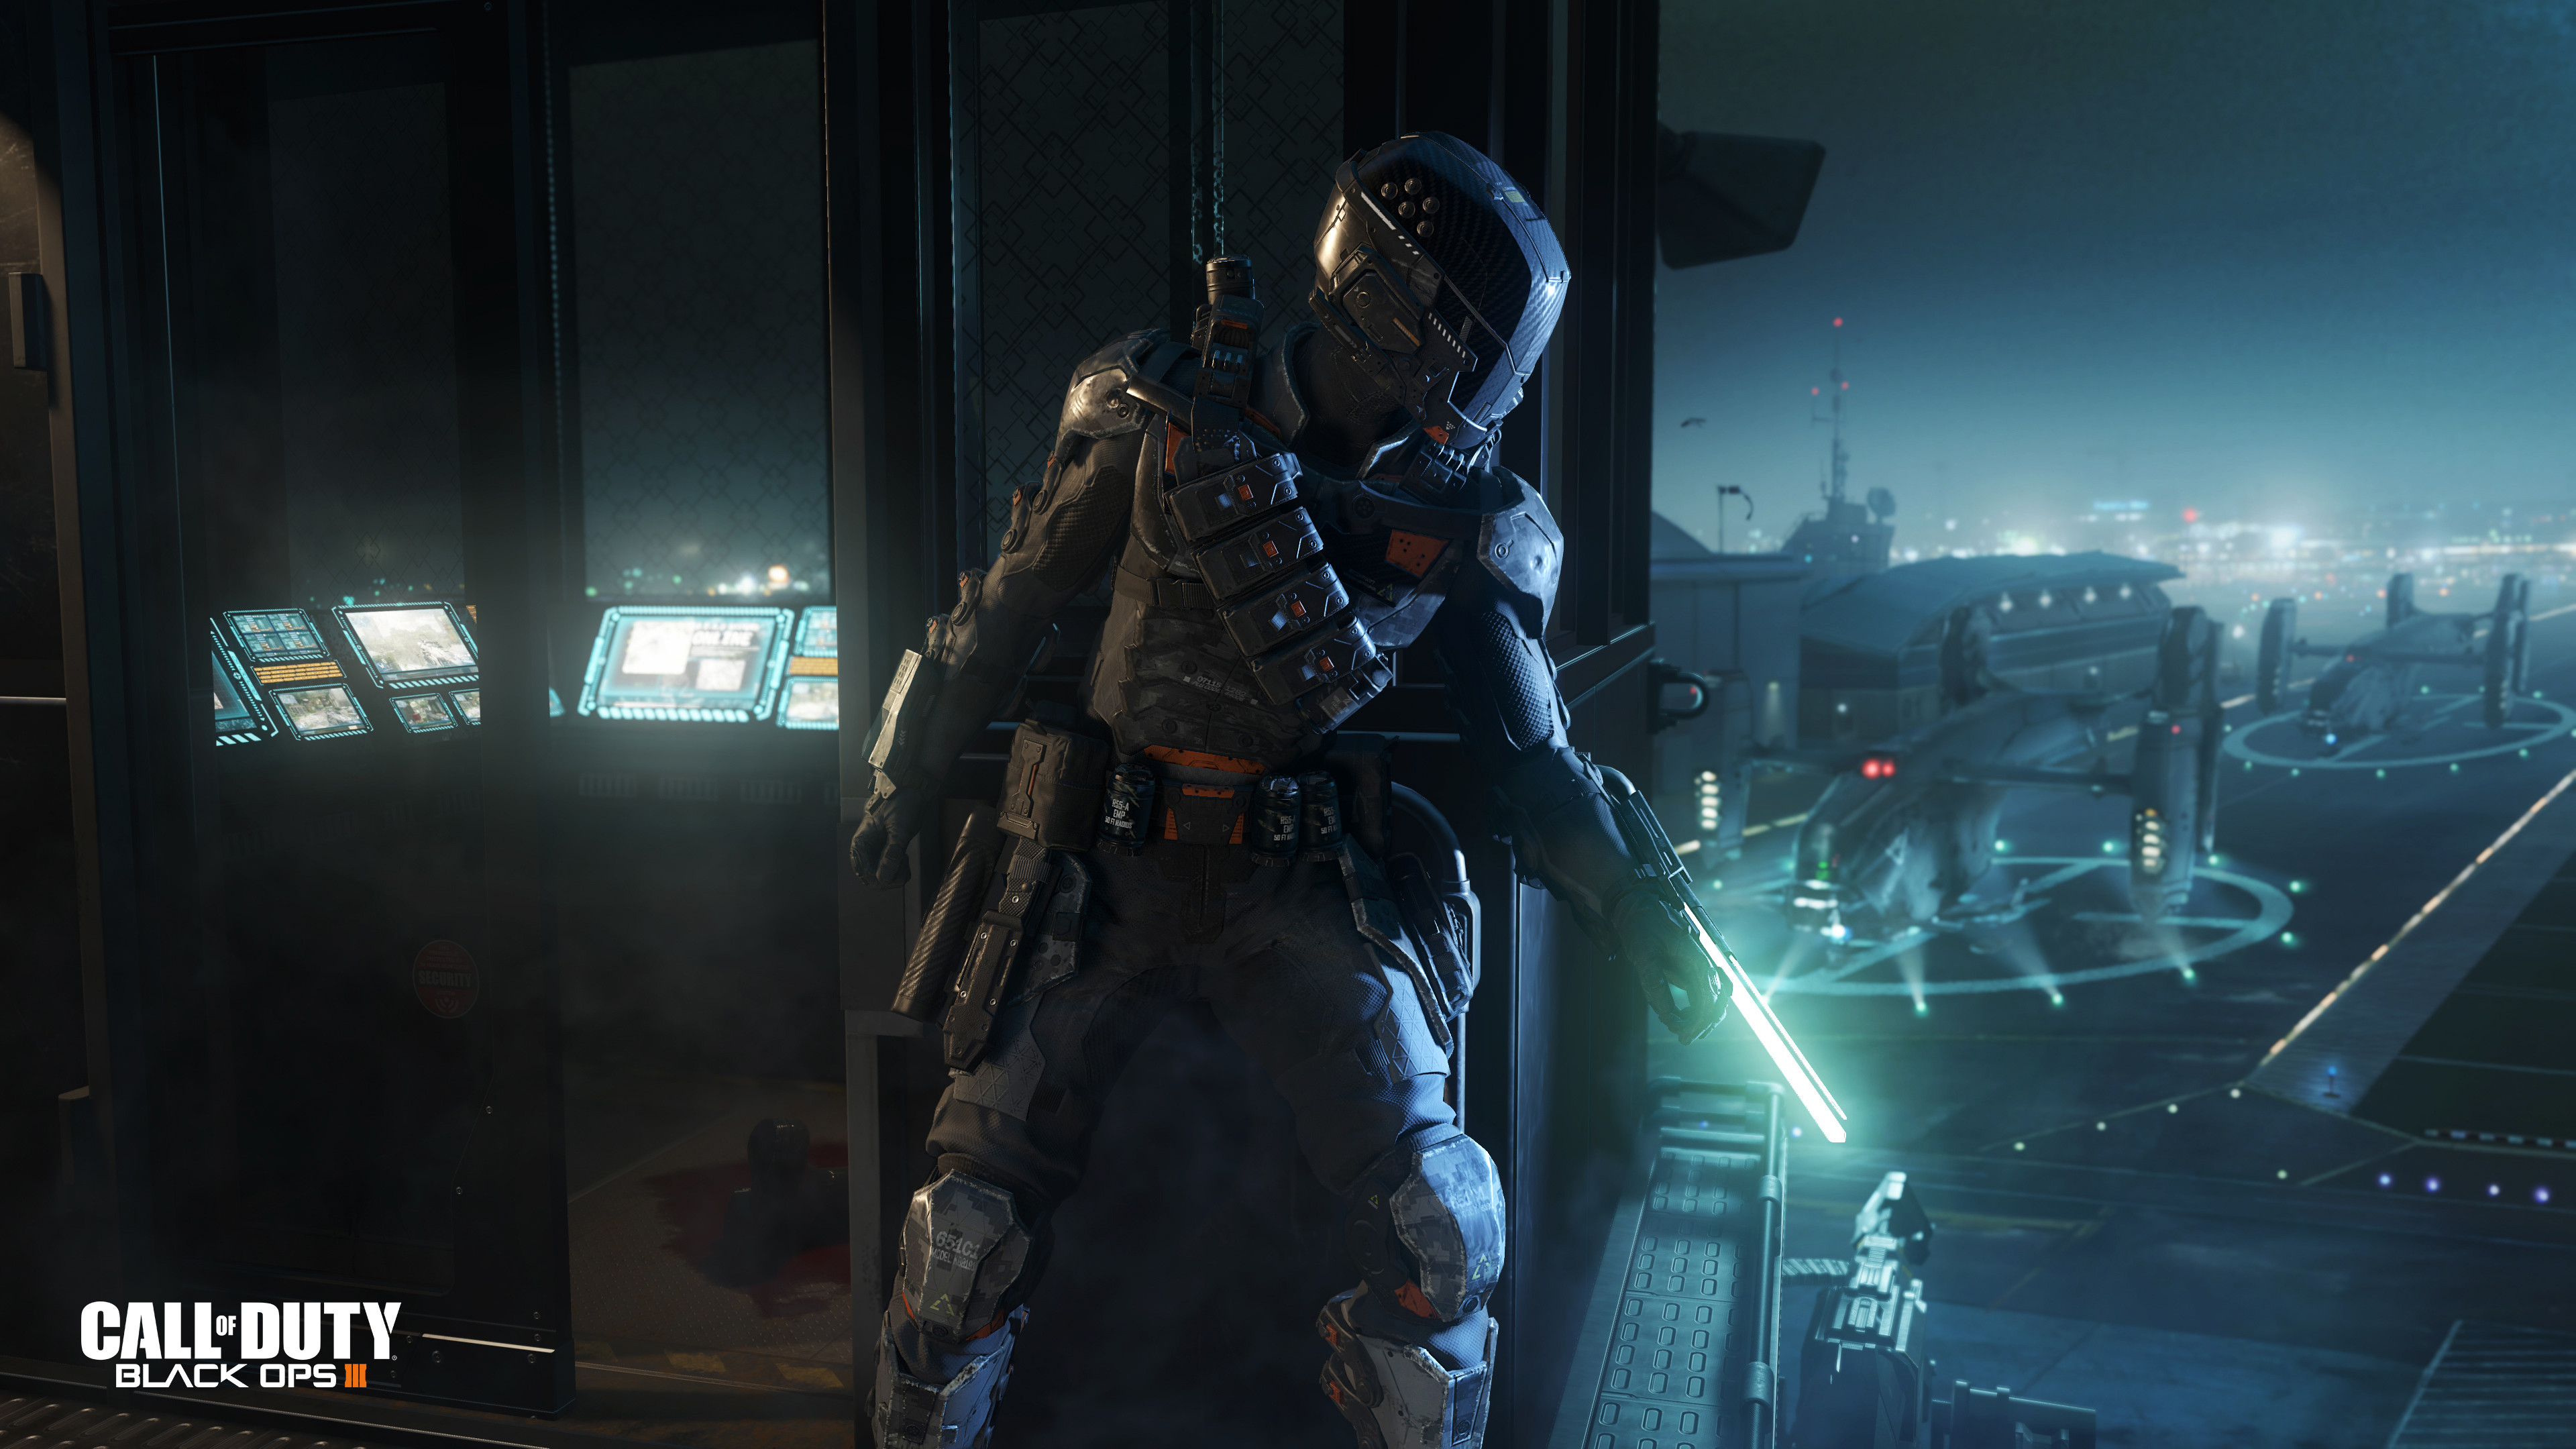 Res: 3840x2160, Call of Duty Black Ops 3 Spectre